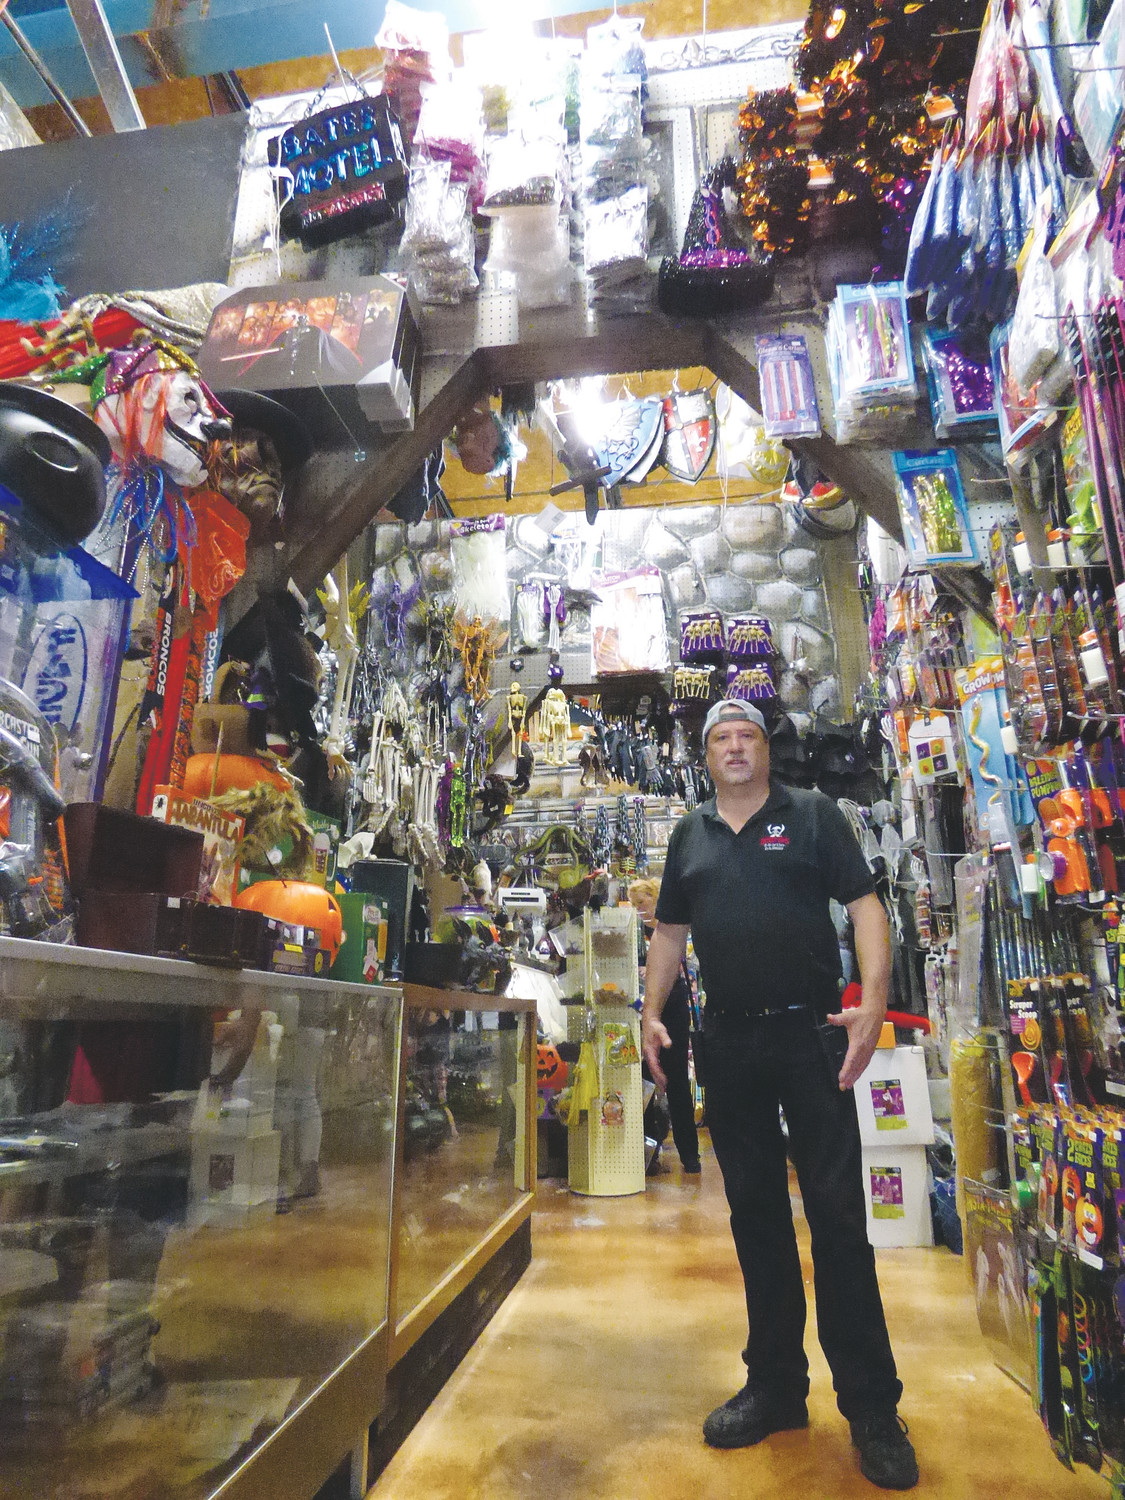 Reinke Bros. owner Greg Reinke shows off one of the recently renovated portions of his wild and wacky costume and prop shop. His famous haunted house is slated to re-open next year.